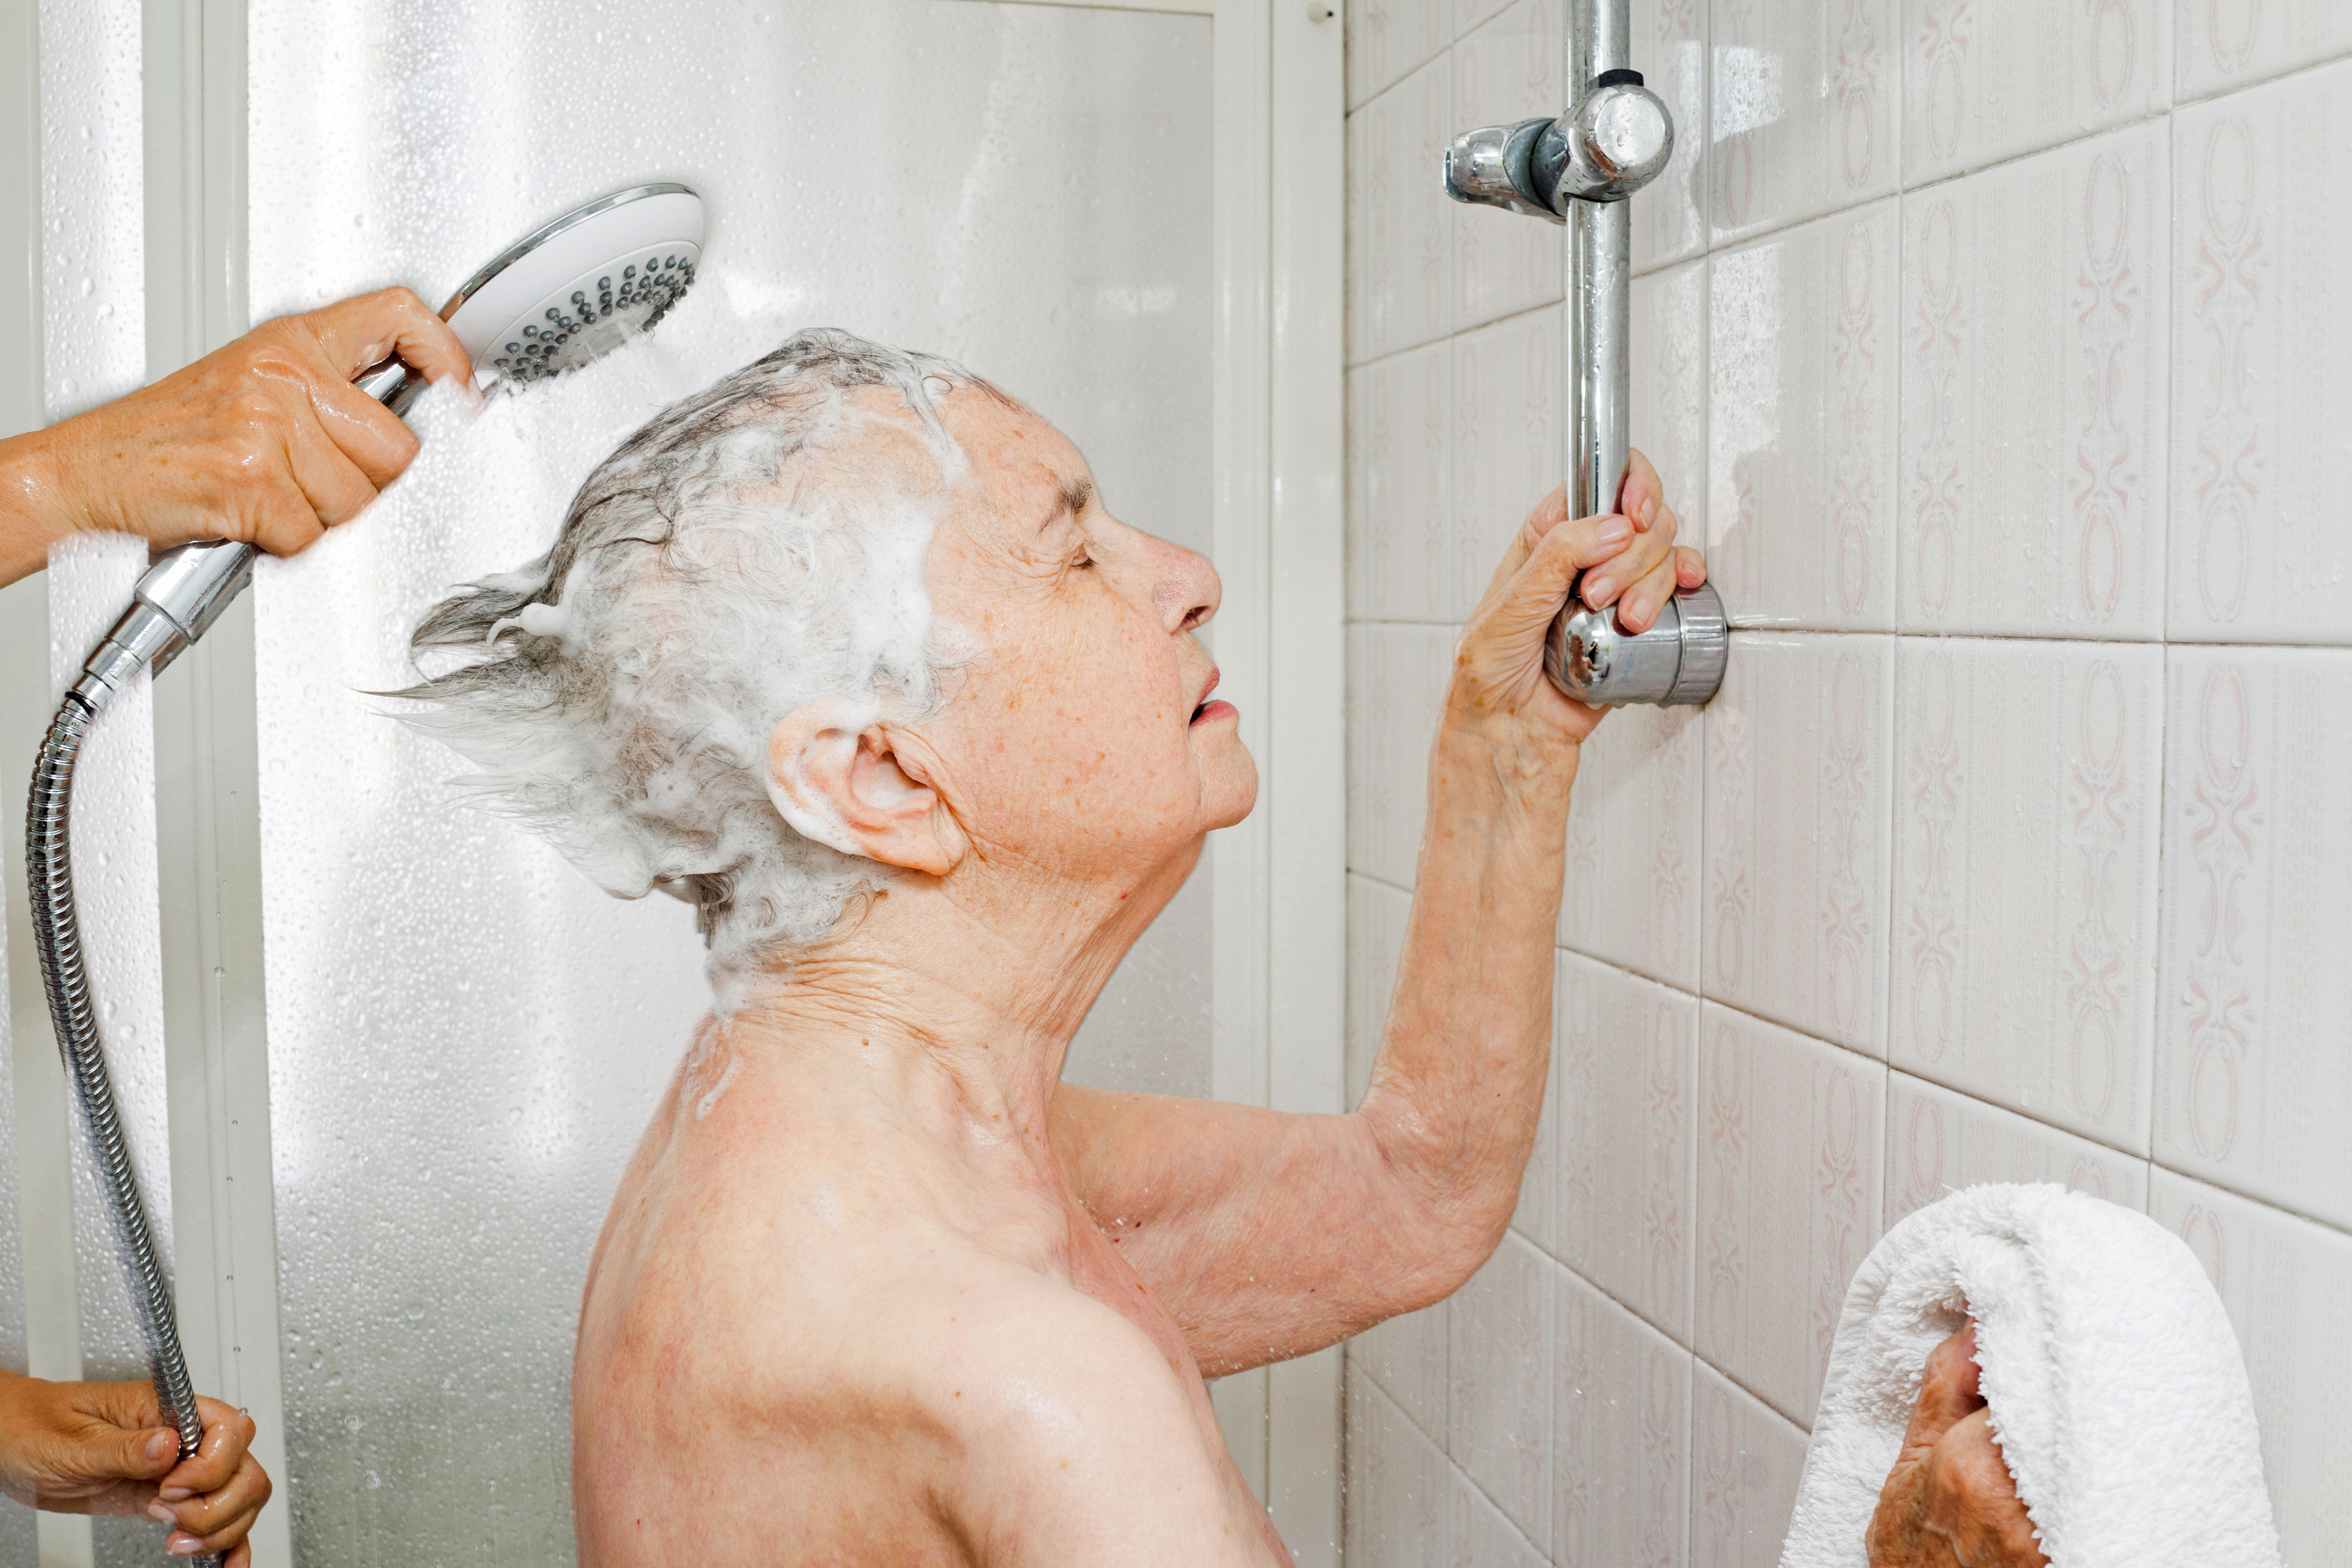 """Chiara Micheletti helps her mother Marisa Vesco take a shower in Cossato, Italy, June 7, 2015. Marisa suffered from incurable liver cancer and in the last months of her life she was not able to bathe herself. Her daughter Chiara cherished the time she was able to help her mother. REUTERS/Gaia Squarci            SEARCH """"ITALY CANCER"""" FOR THIS STORY. SEARCH """"THE WIDER IMAGE"""" FOR ALL STORIES.      TPX IMAGES OF THE DAY"""